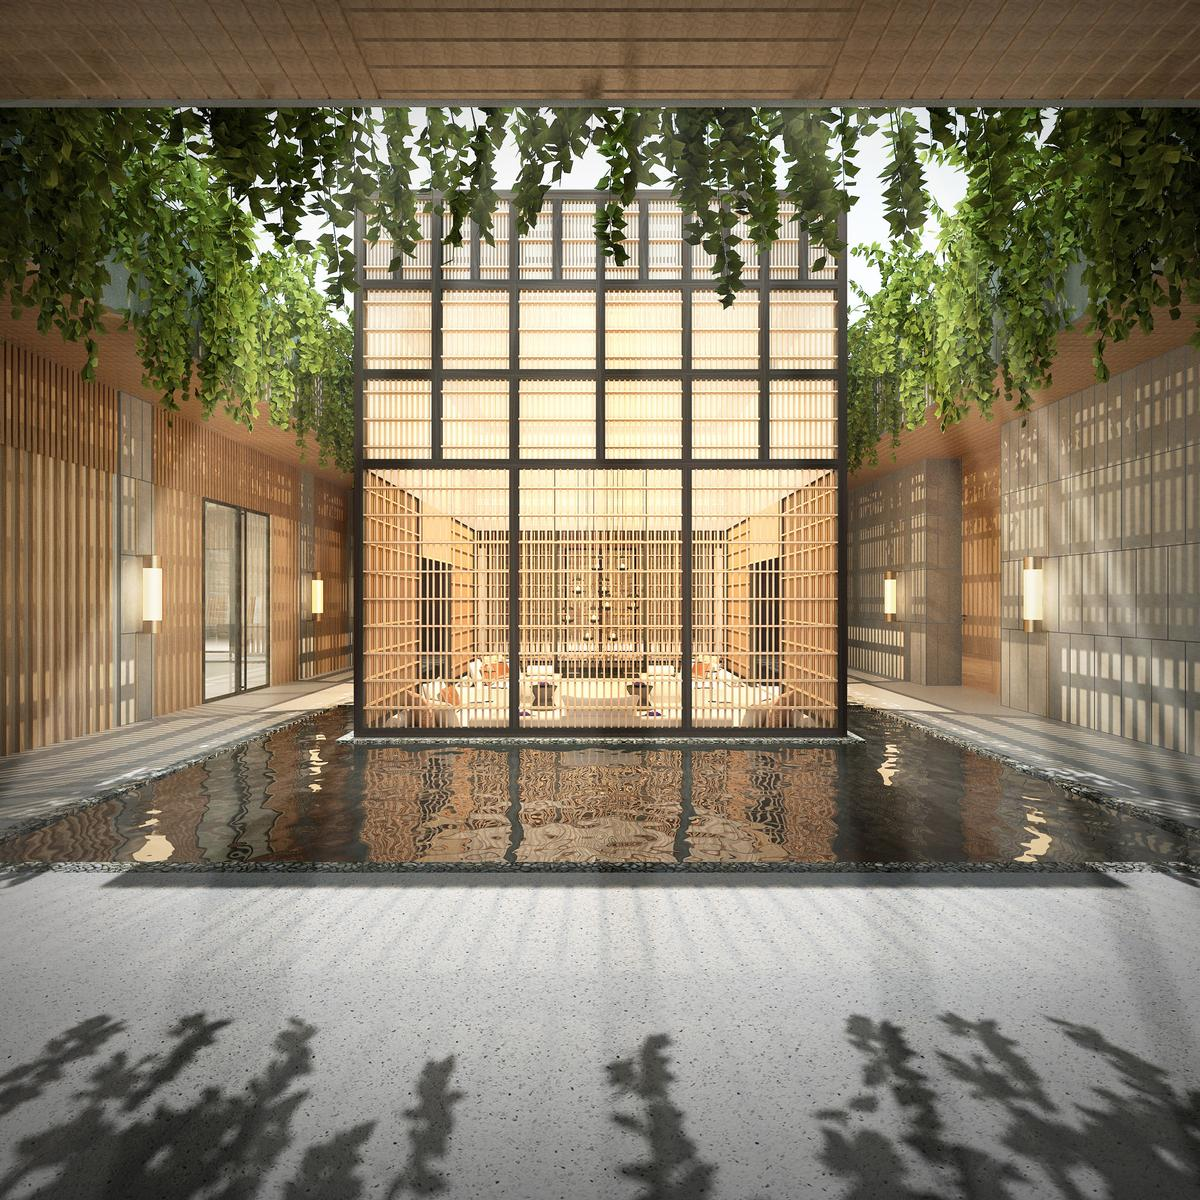 Inspired by Balinese architecture and space planning, the spa features an inner 'floating courtyard' where guests will be able to reboot and recover pre- and post-treatment